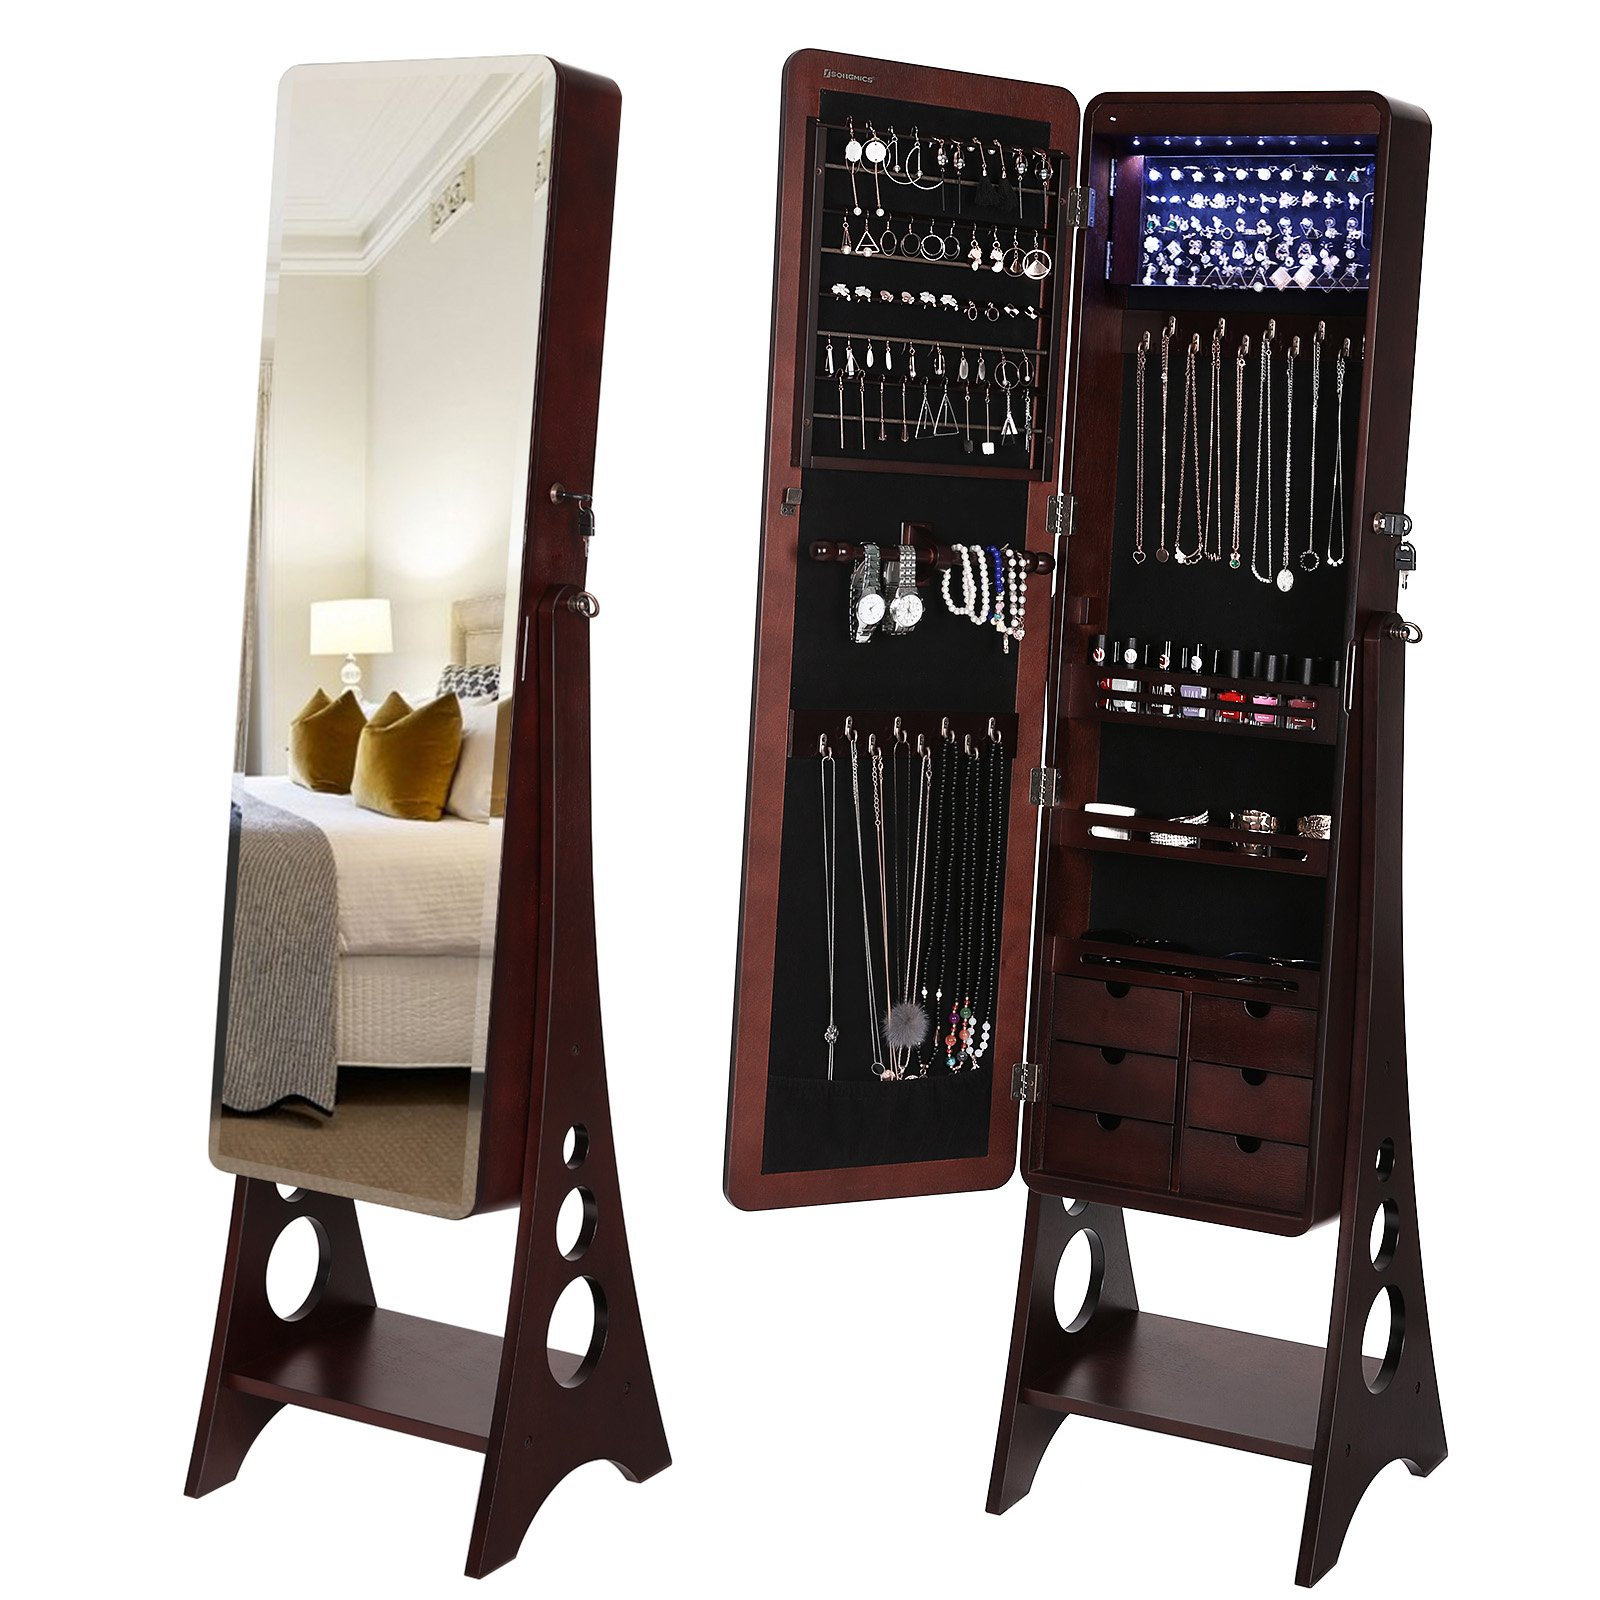 SONGMICS 8 LEDs Jewelry Cabinet with Bevel Edge Mirror Lockable Standing Armoire Organizer with 6 Drawers and Earring Board Brown UJJC89K by SONGMICS